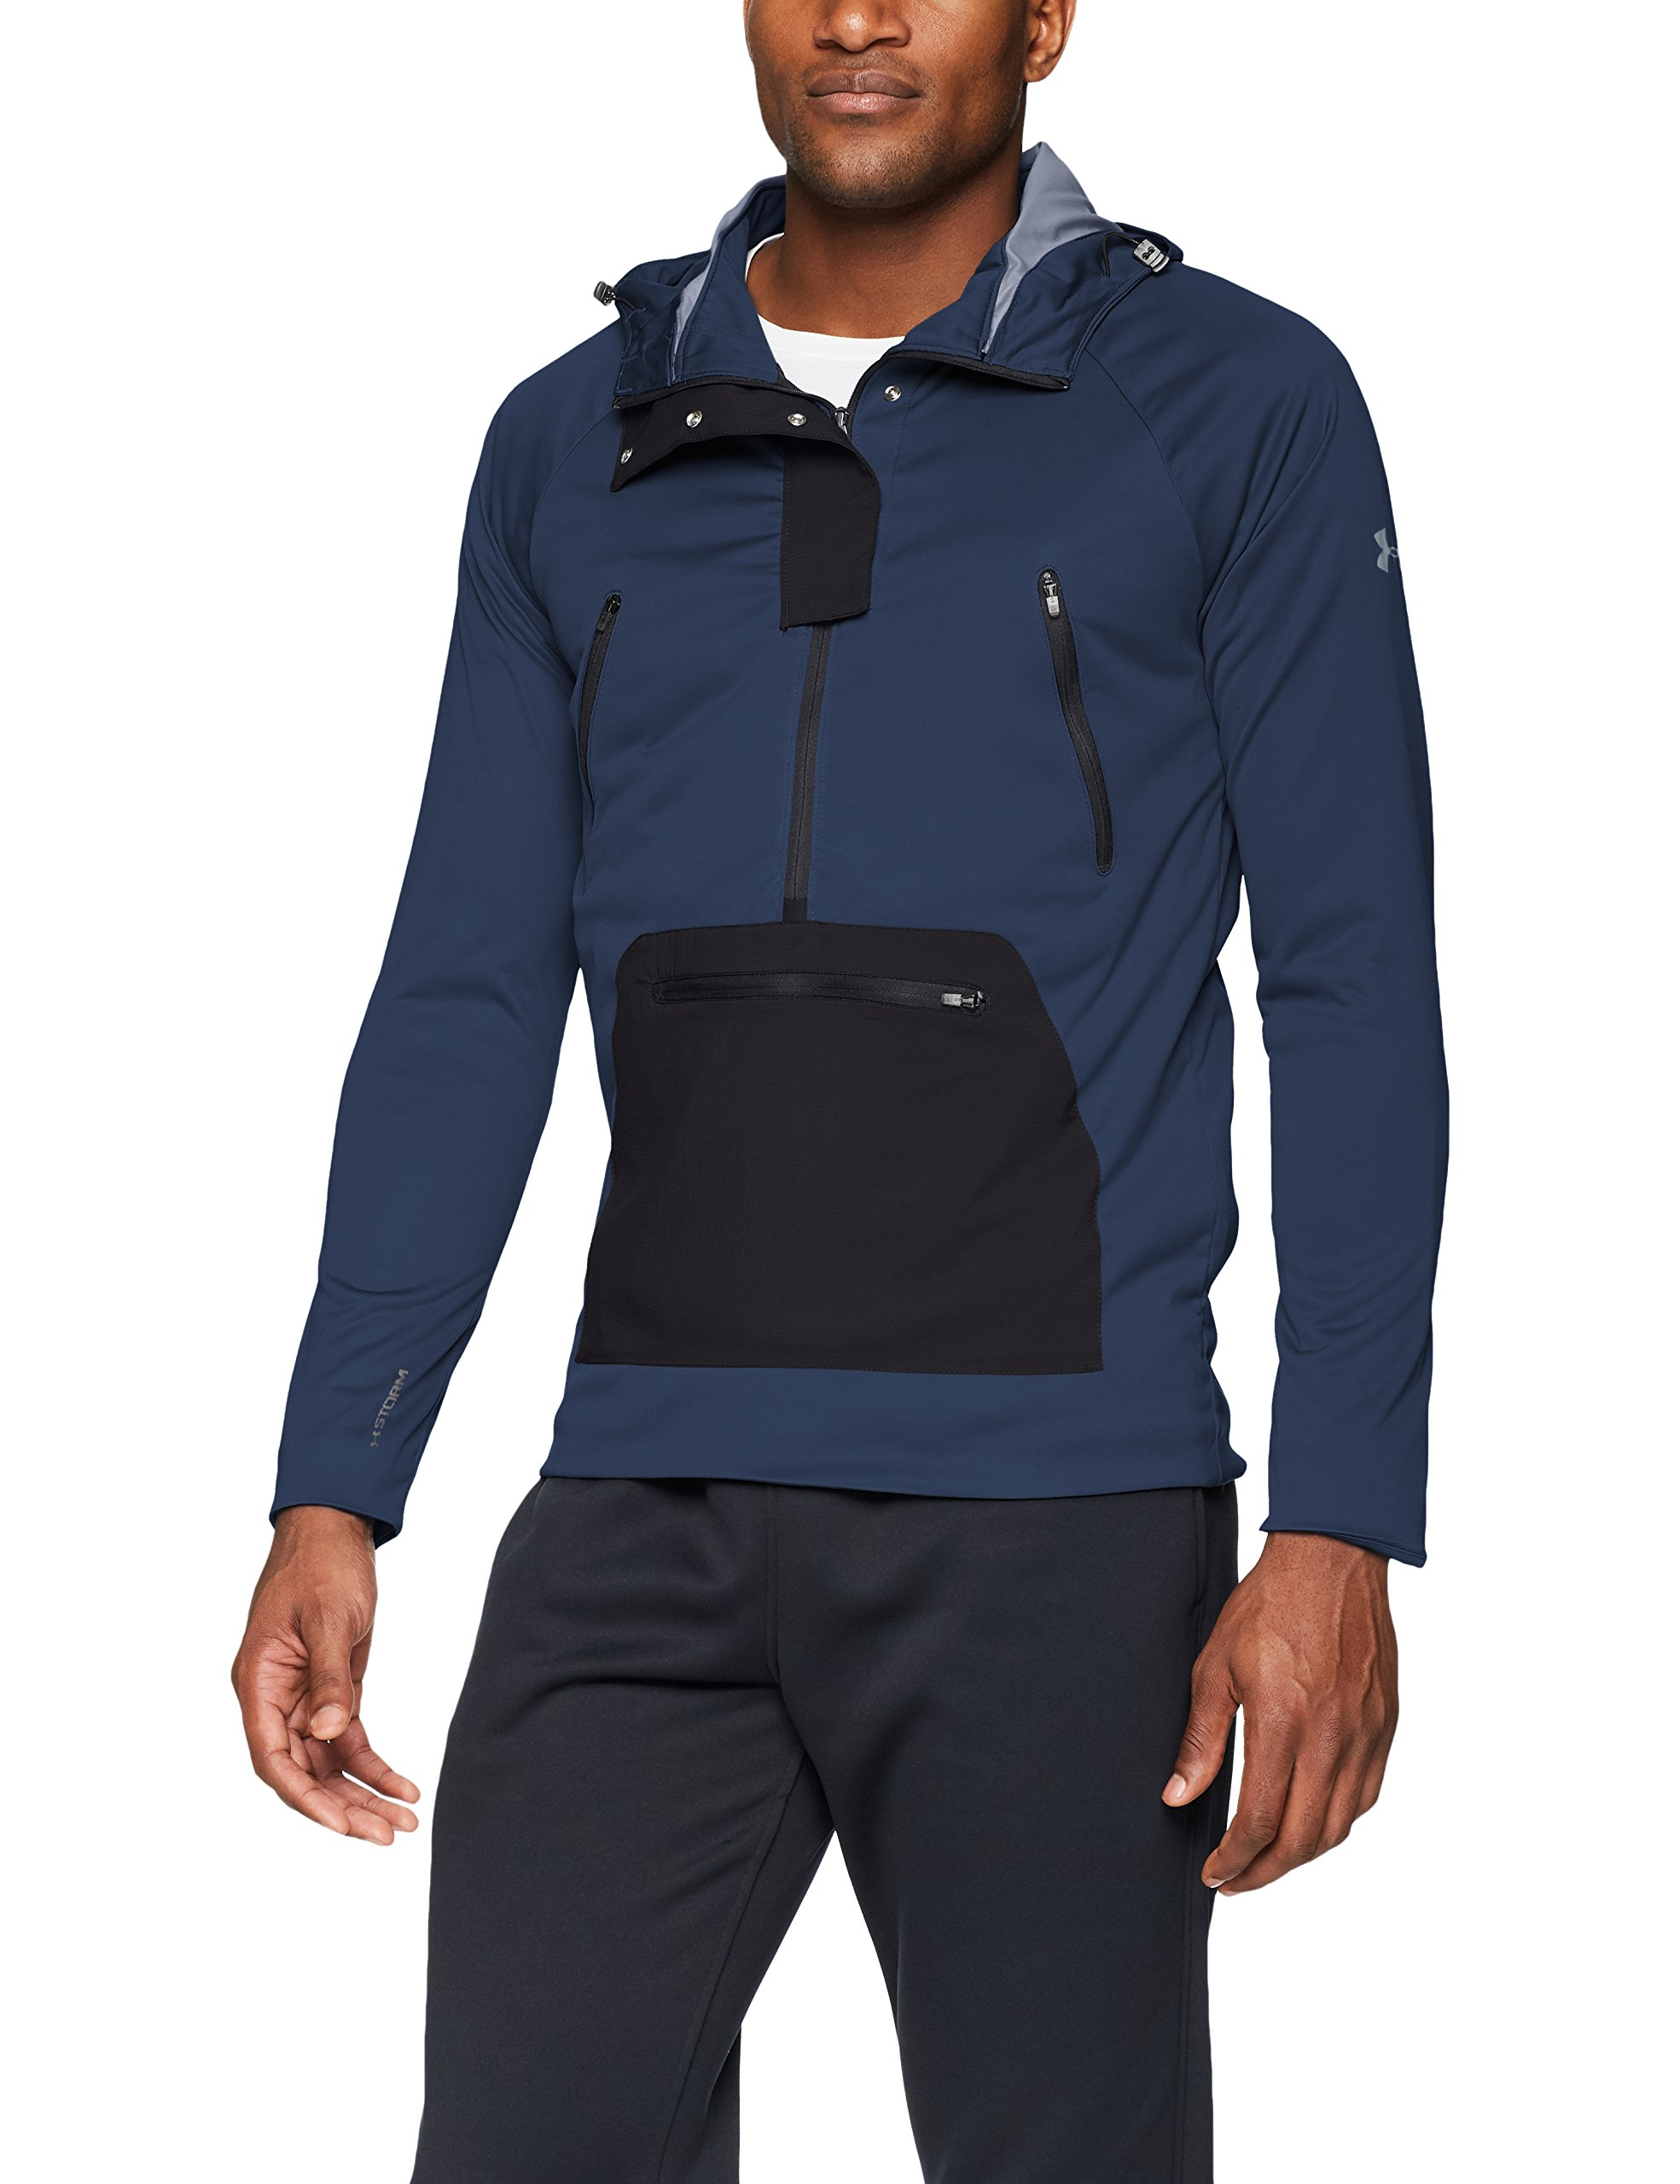 Under Armour Men's Storm Define The Anorak Jacket , Academy (408)/Reflective, Small by Under Armour (Image #1)